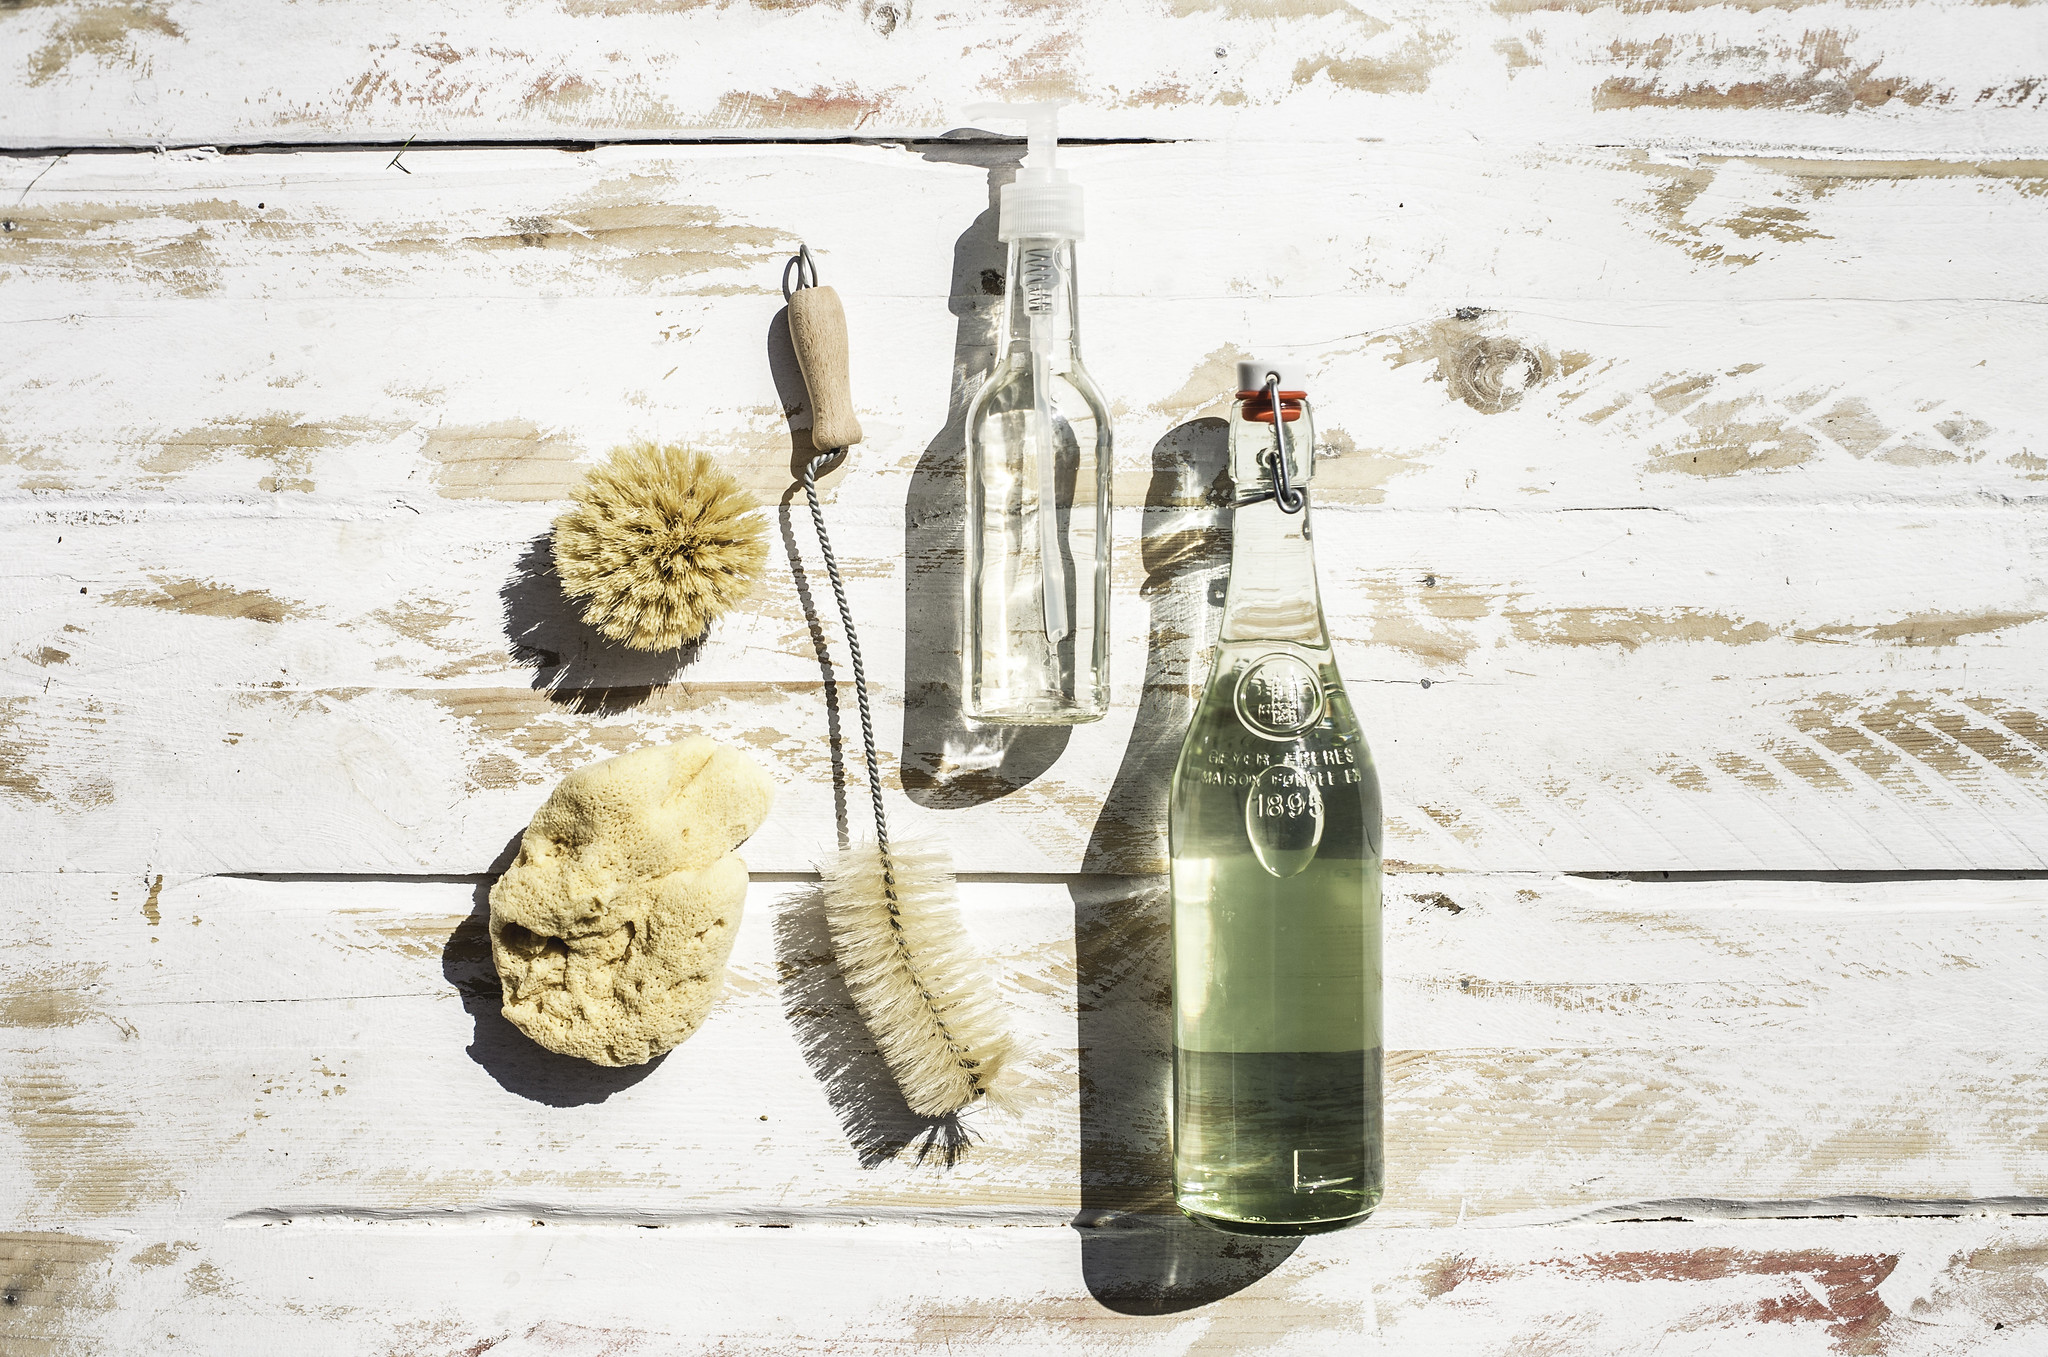 We use biodegradable soap for the kitchen and washing the van, bought in bulk using recycled lemonade and soy sauce bottles!  We use a natural bristled bottle washer, pot scrubber and just started using a sea sponge we picked up in Croatia for wiping surfaces and washing the dishes.